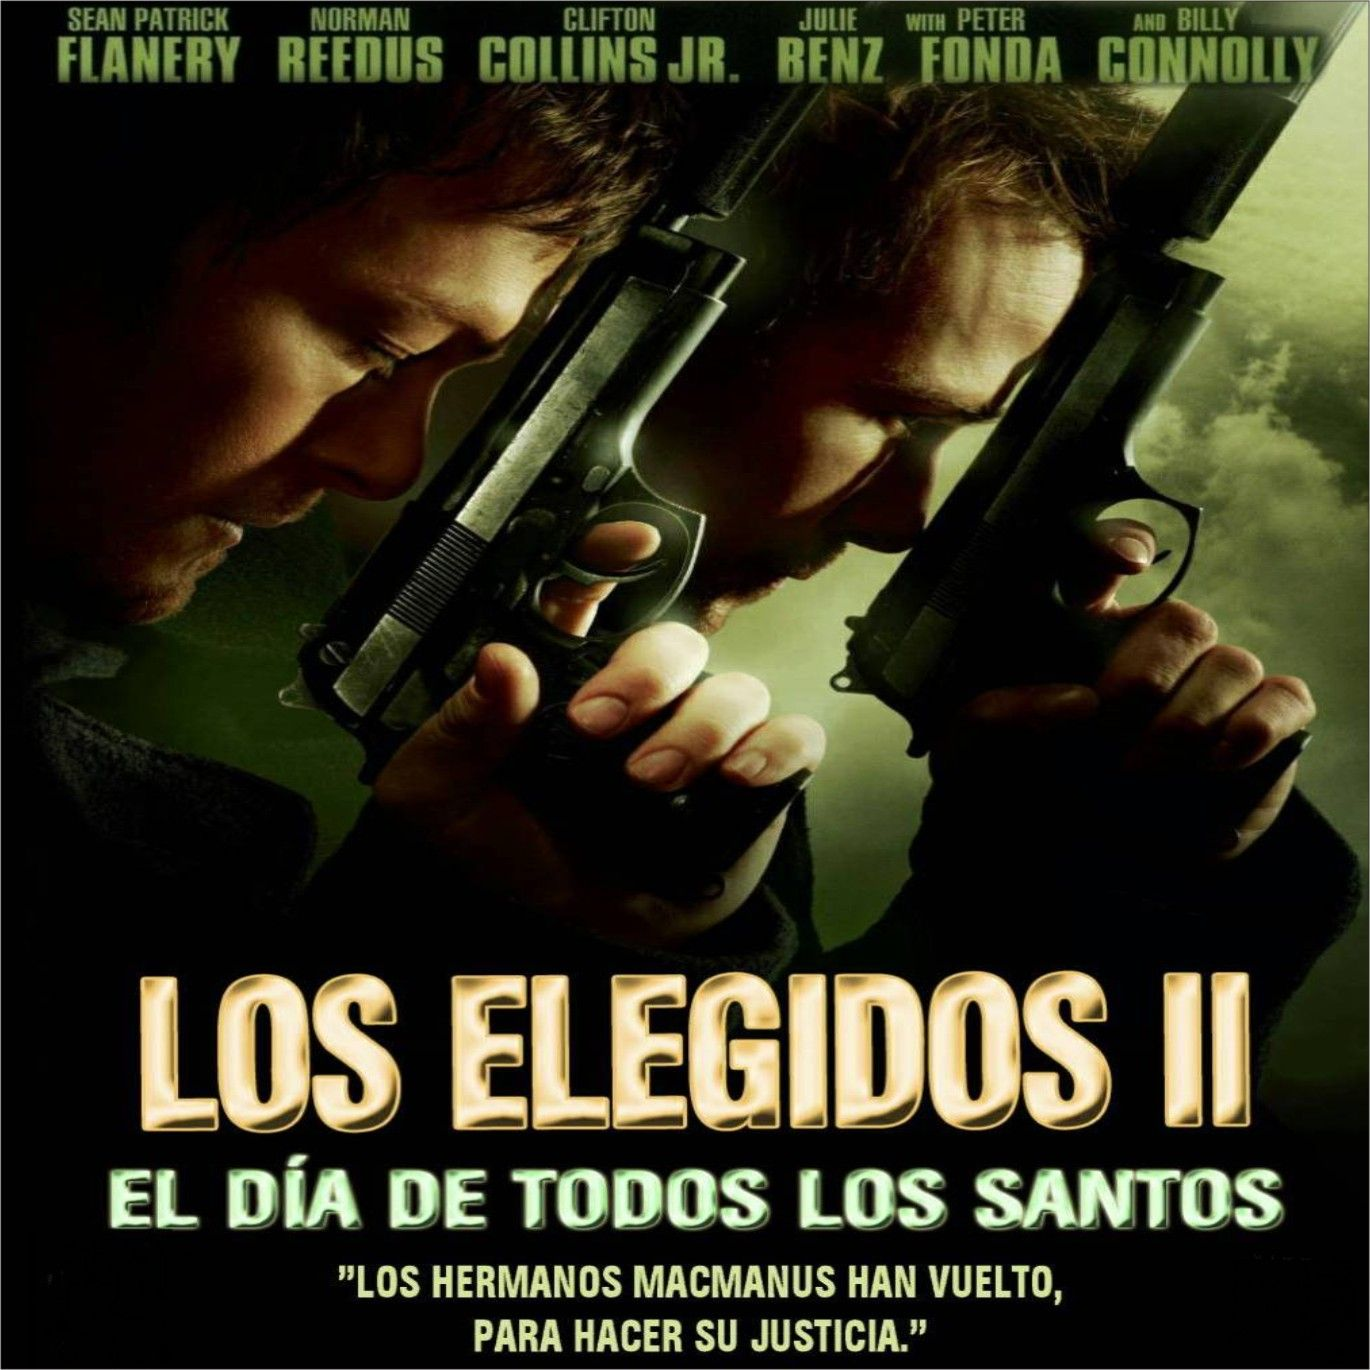 Los Elegidos 2 (The Boondock Saints II)